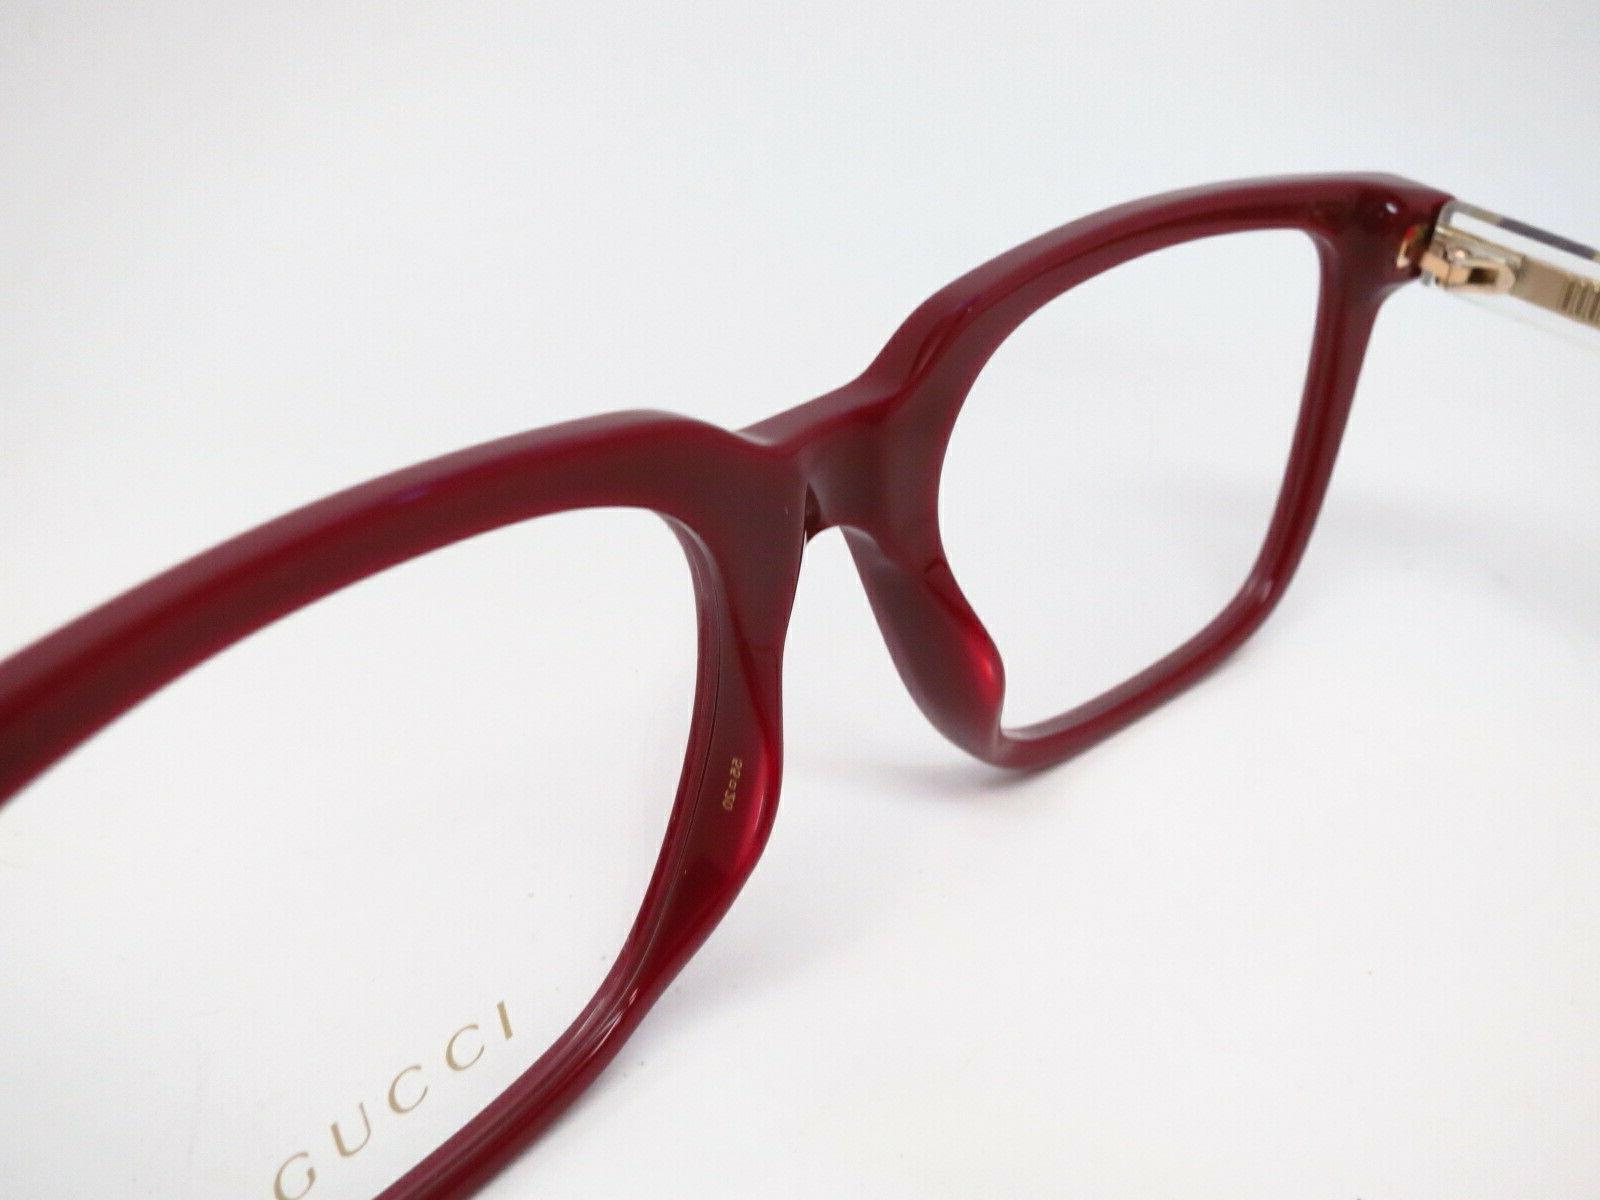 New Authentic Gucci 007 Eyewear 55mm Rx-able